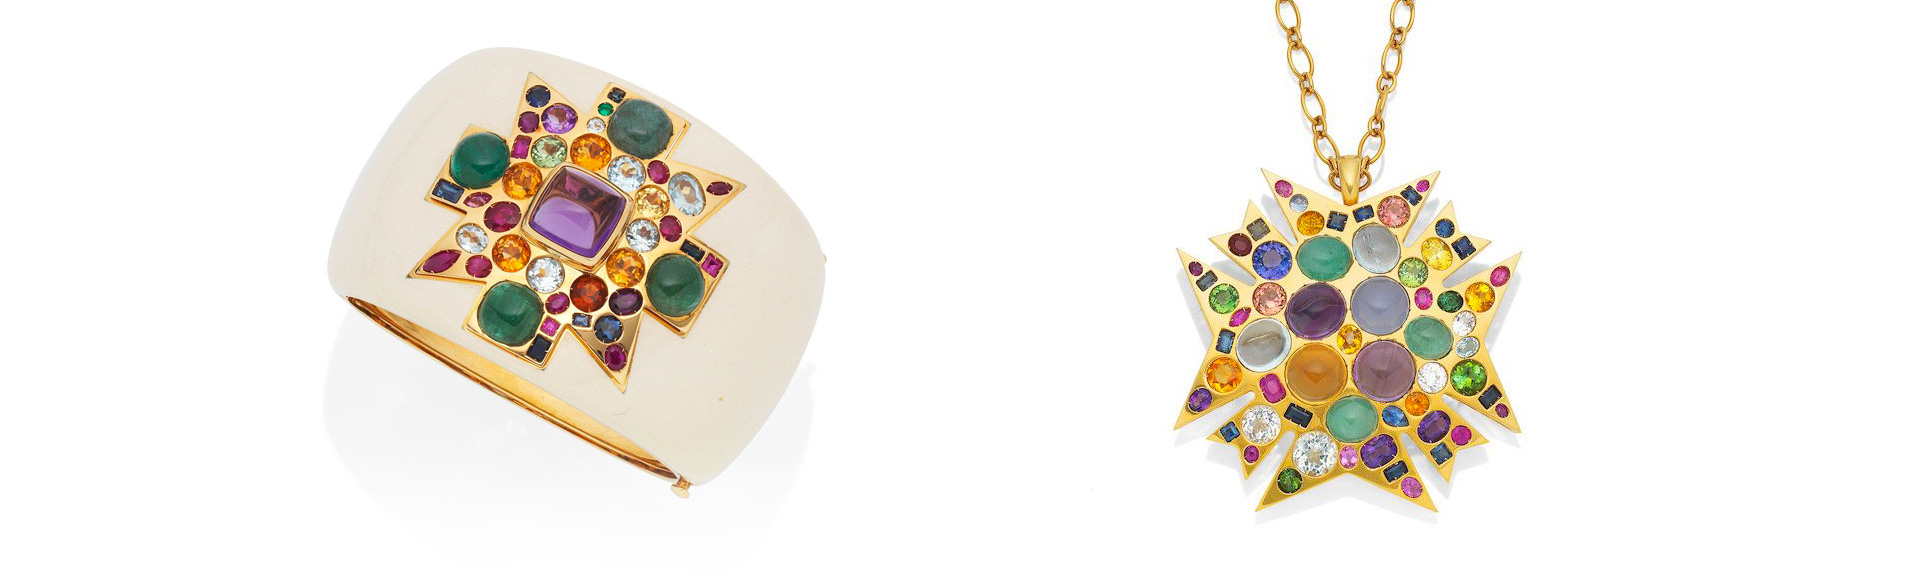 A White Enamel and Gem Set Cuff Bangle and a multi gem set cross pendant/Necklace by Verdura